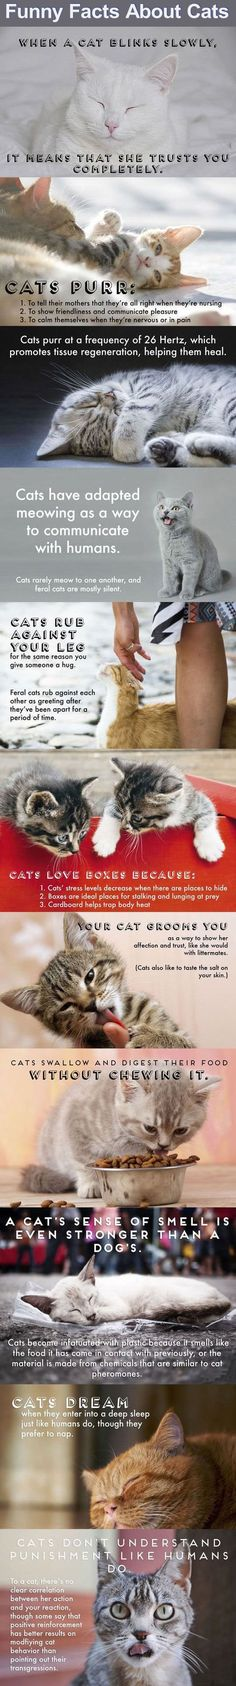 Funny Cat Facts Pictures, Photos, and Images for Facebook, Tumblr, Pinterest, and Twitter: